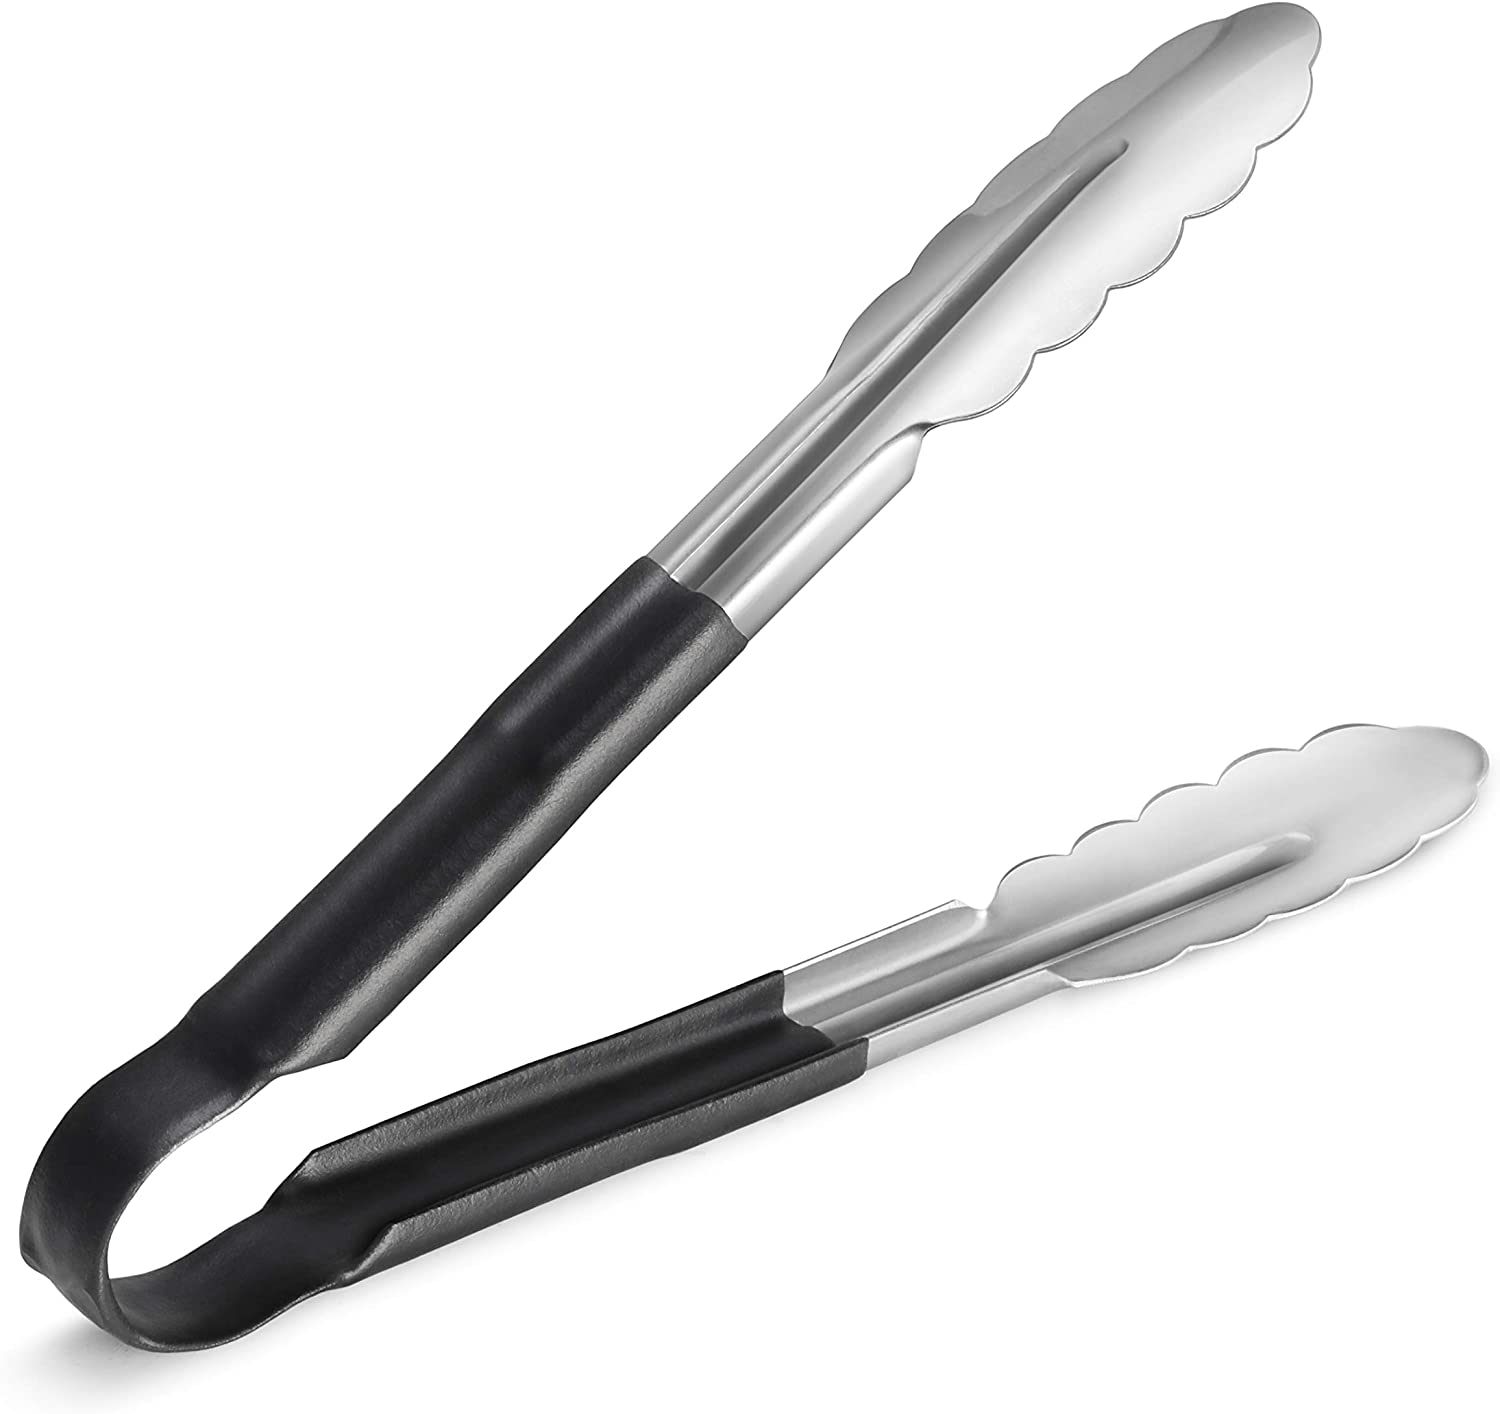 New Star Foodservice 35841 9-Inch Utility Spring Tongs, Stainless Steel, Vinyl Coated, Set of 12, Black